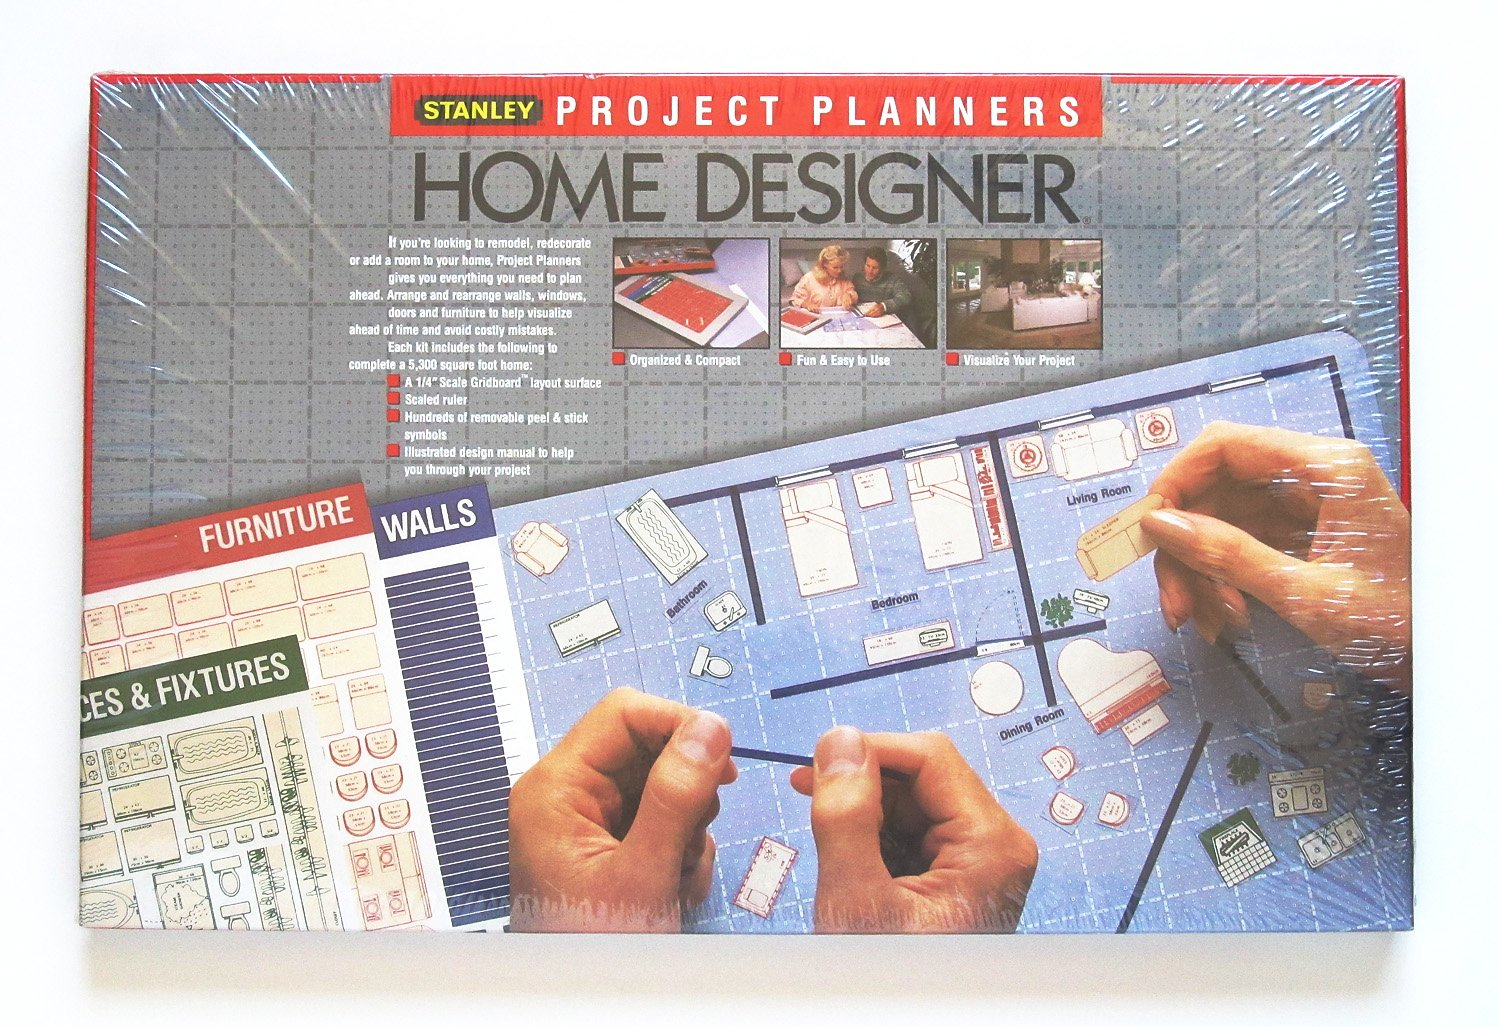 Amazon.com : Stanley Project Planner Home Designer : Other Products :  Office Products Part 71